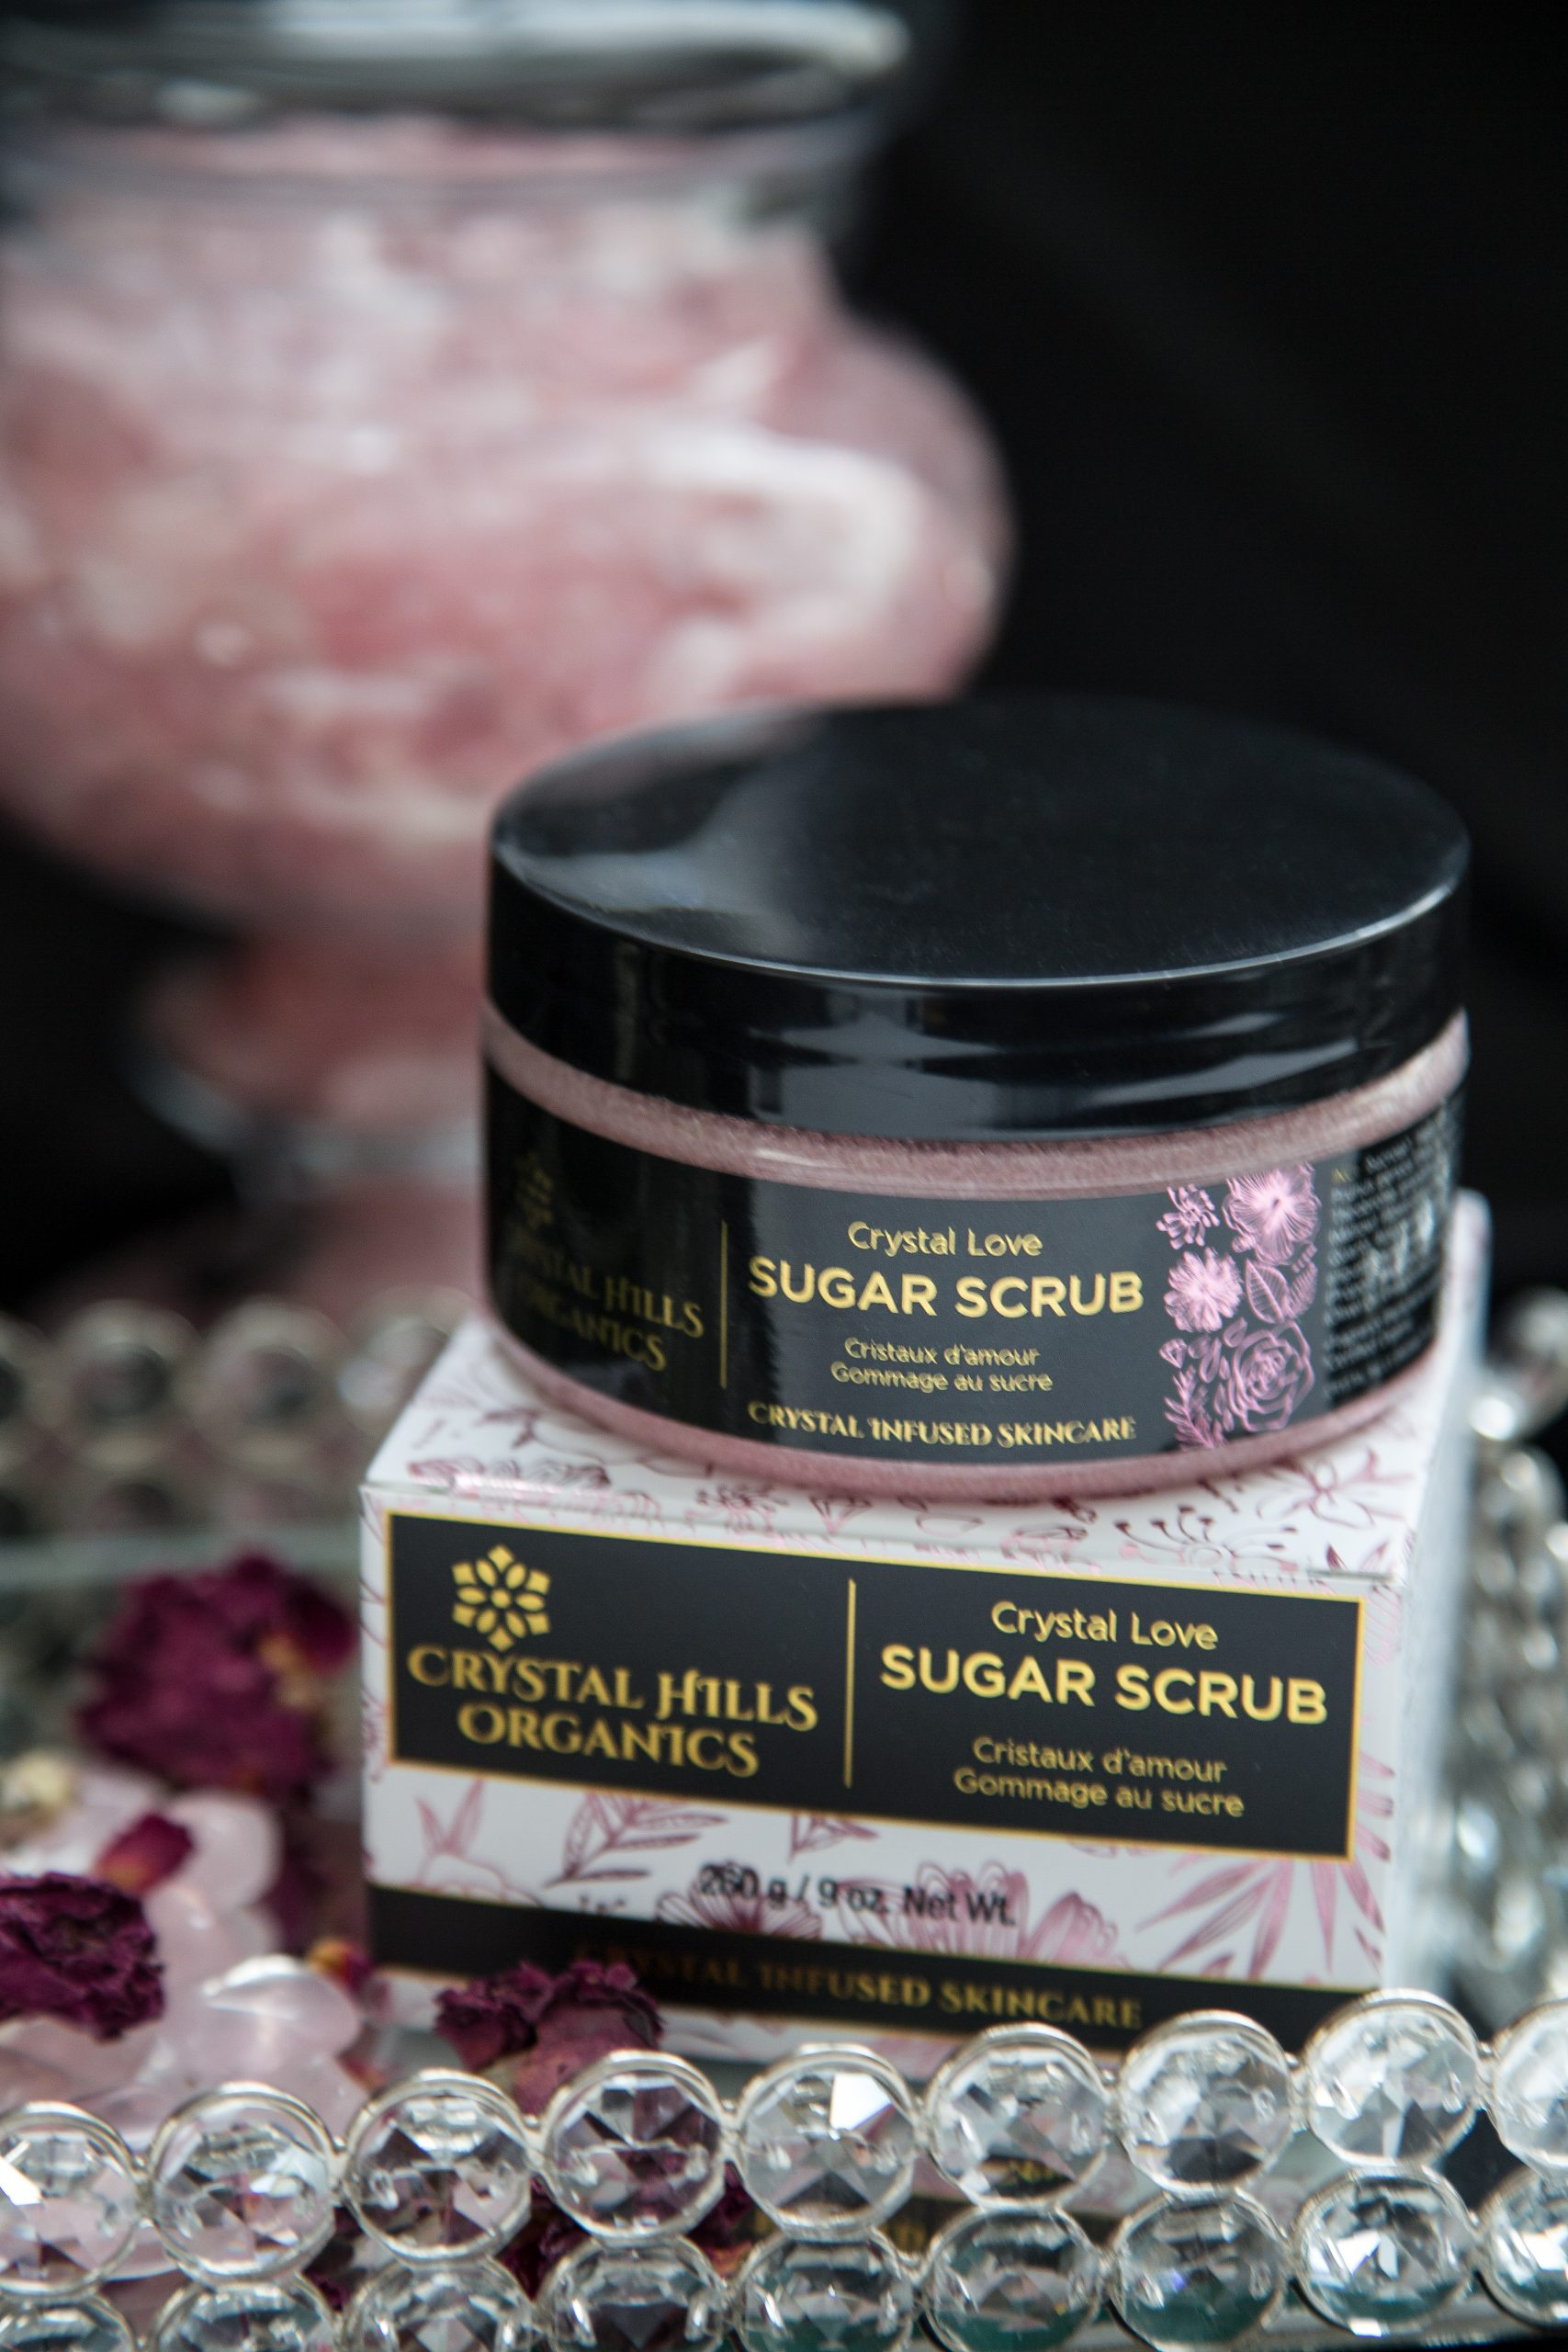 Benefits of using a Sugar Scrub